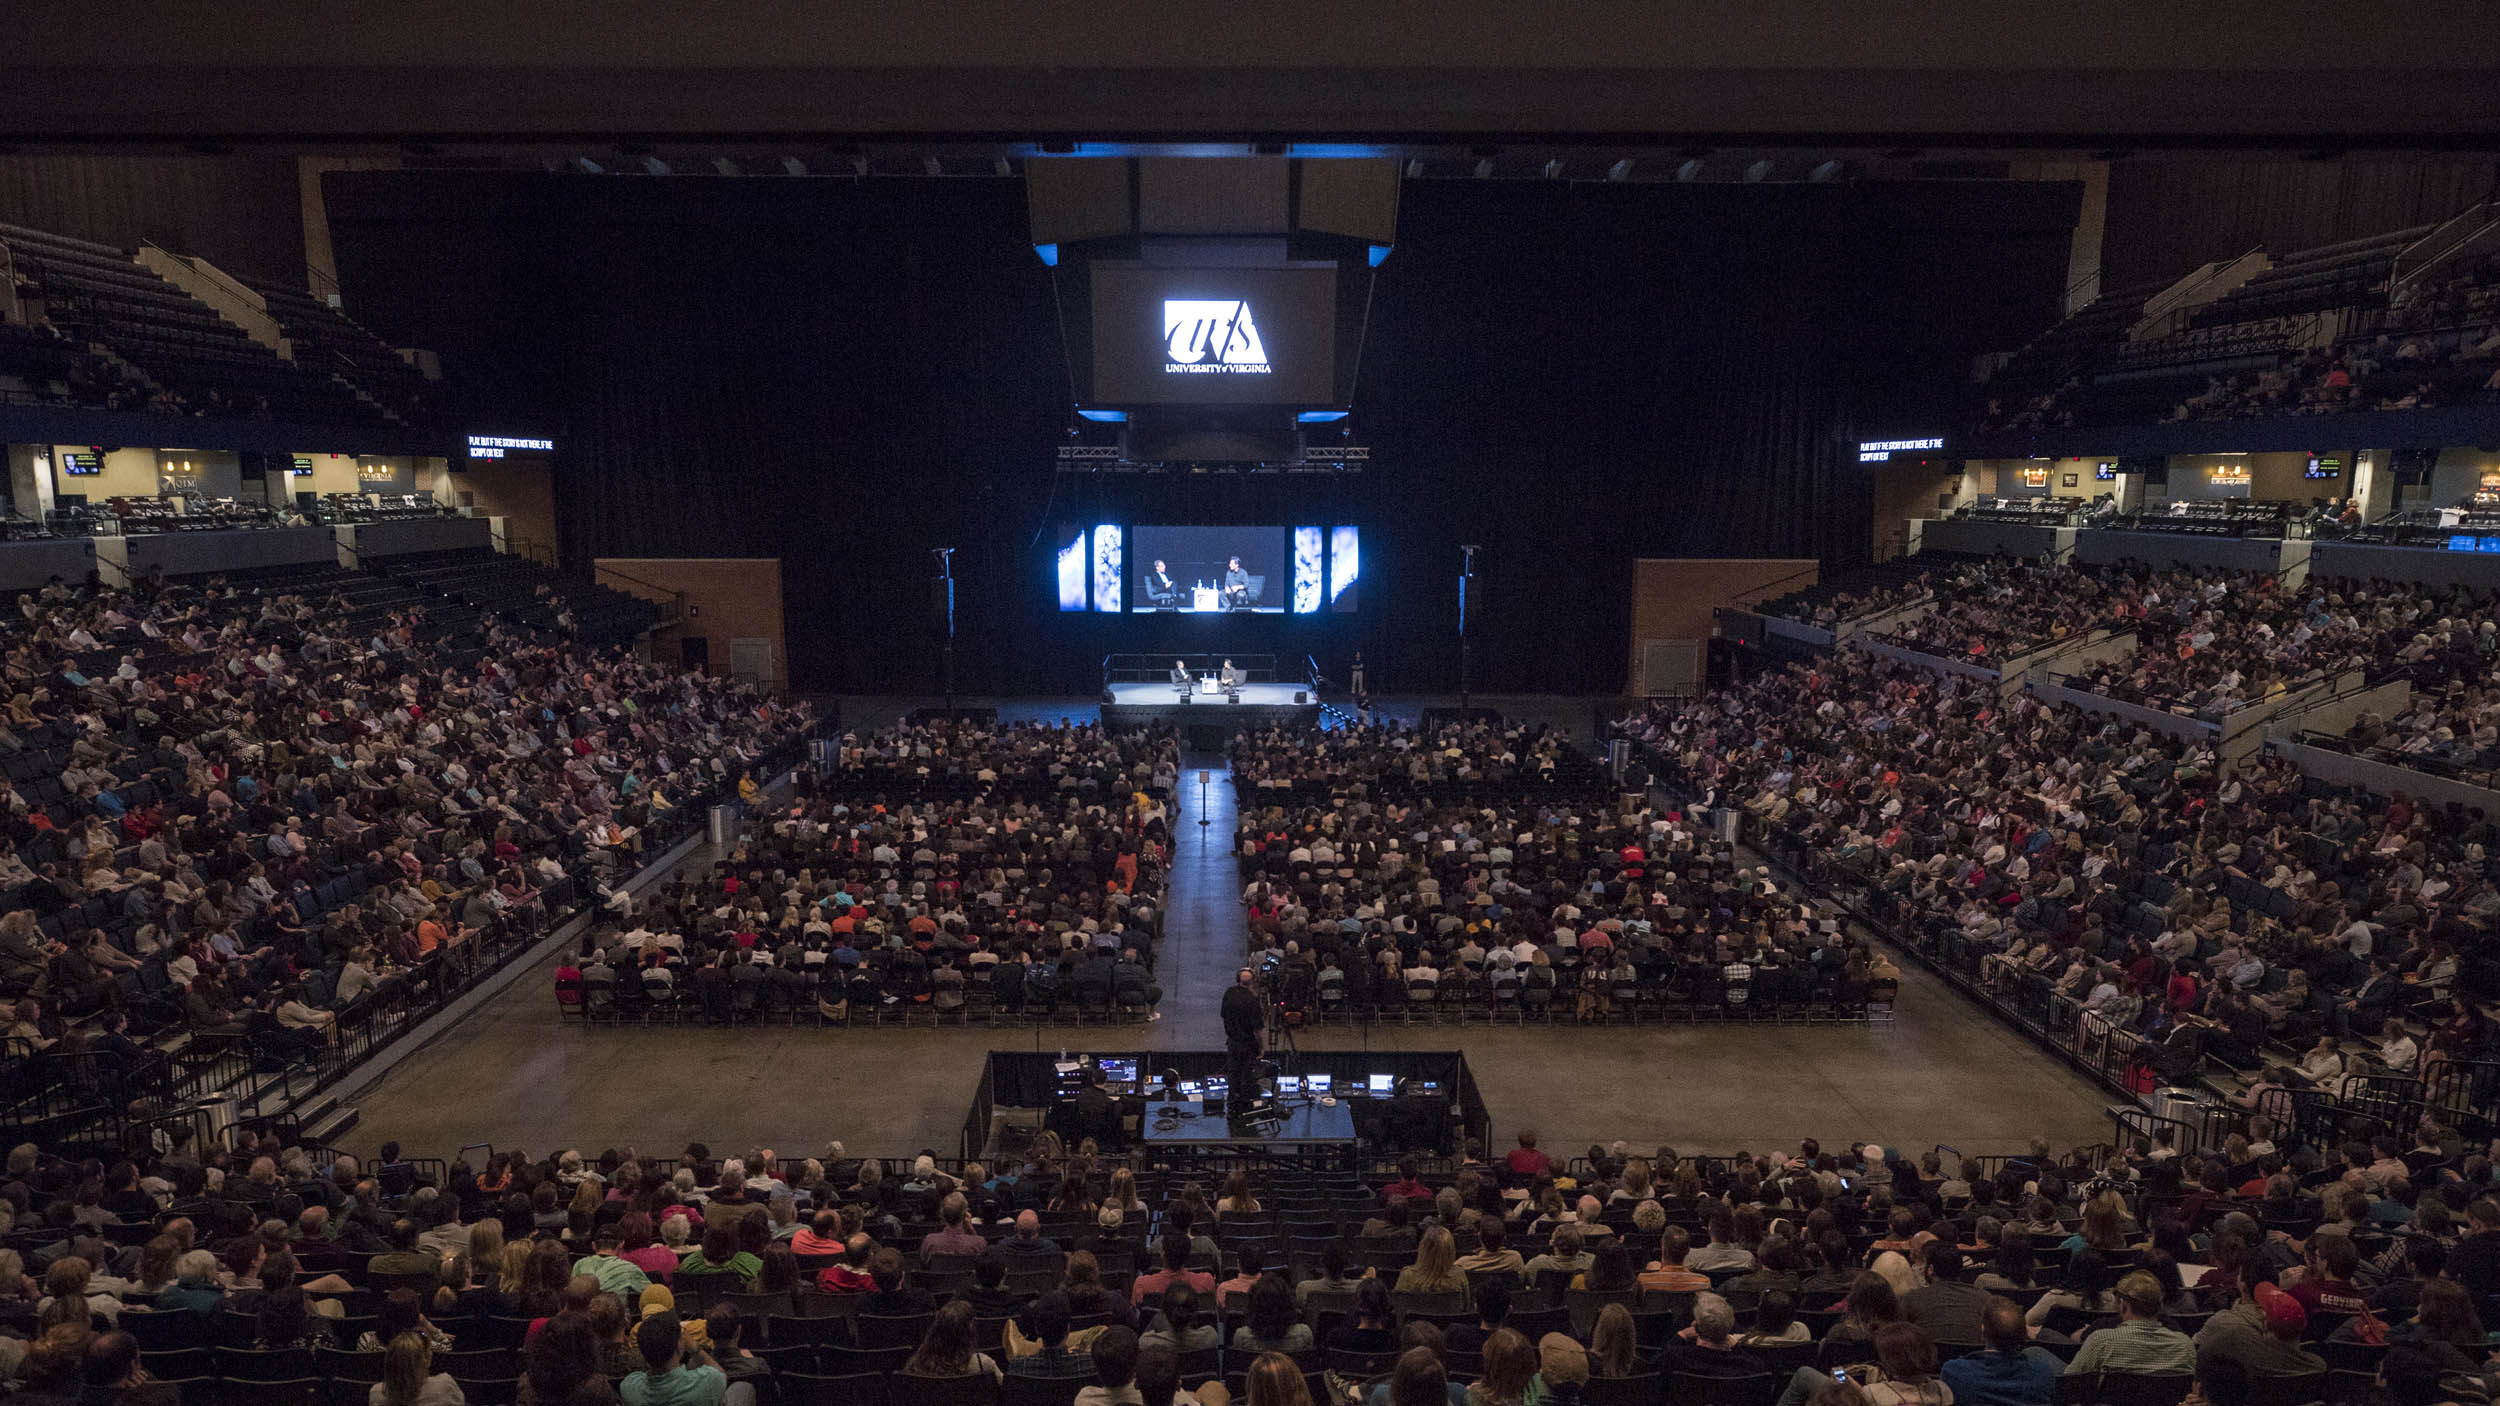 Thousands filled the lower portion of John Paul Jones Arena, eager to catch a glimpse of the actor. (Photo by Sanjay Suchak, University Communications)